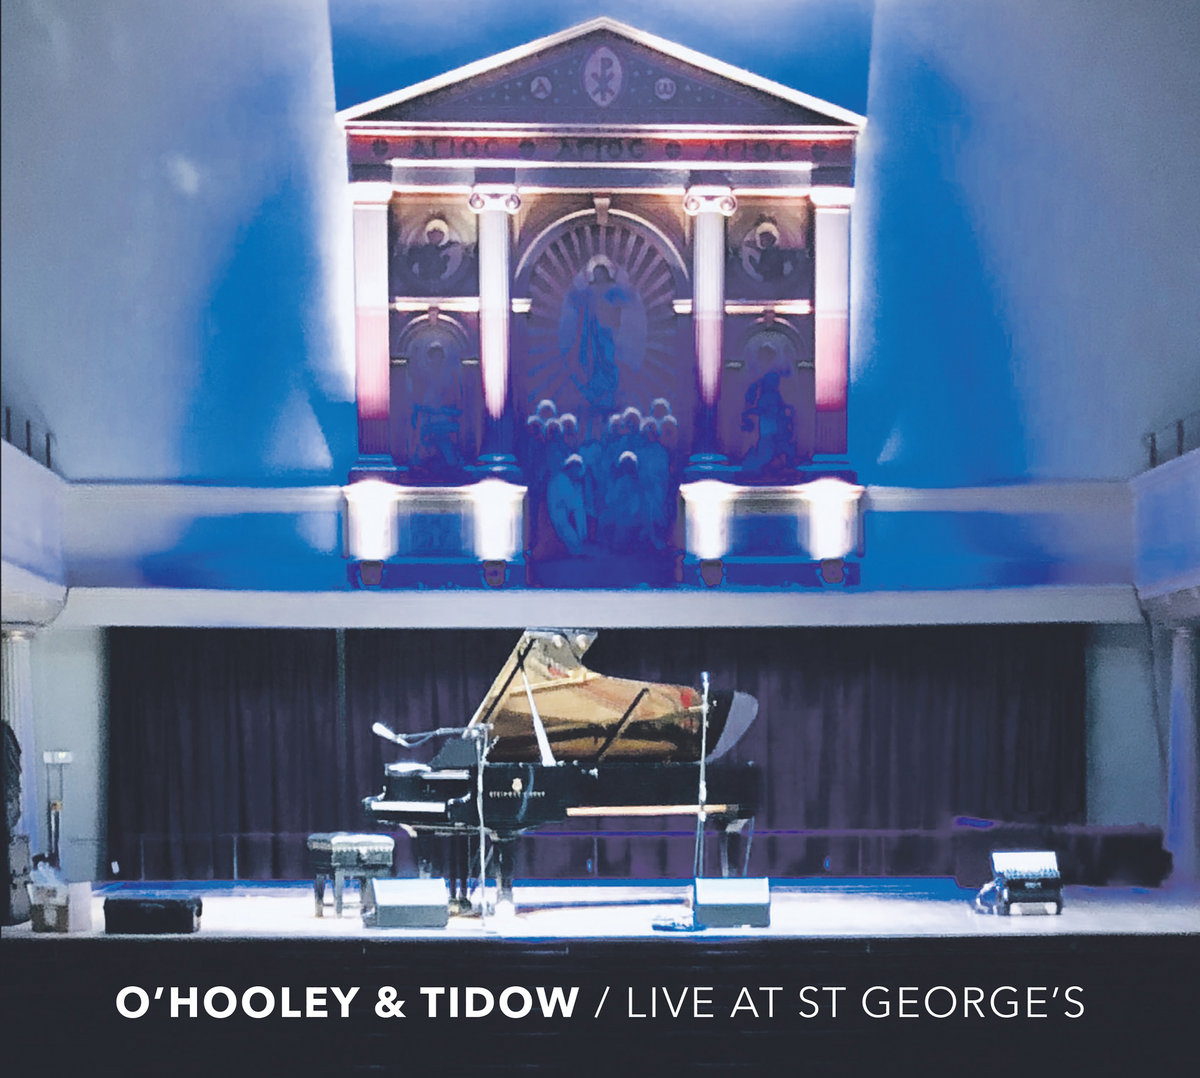 Live At St. George's – O'Hooley & Tidow.